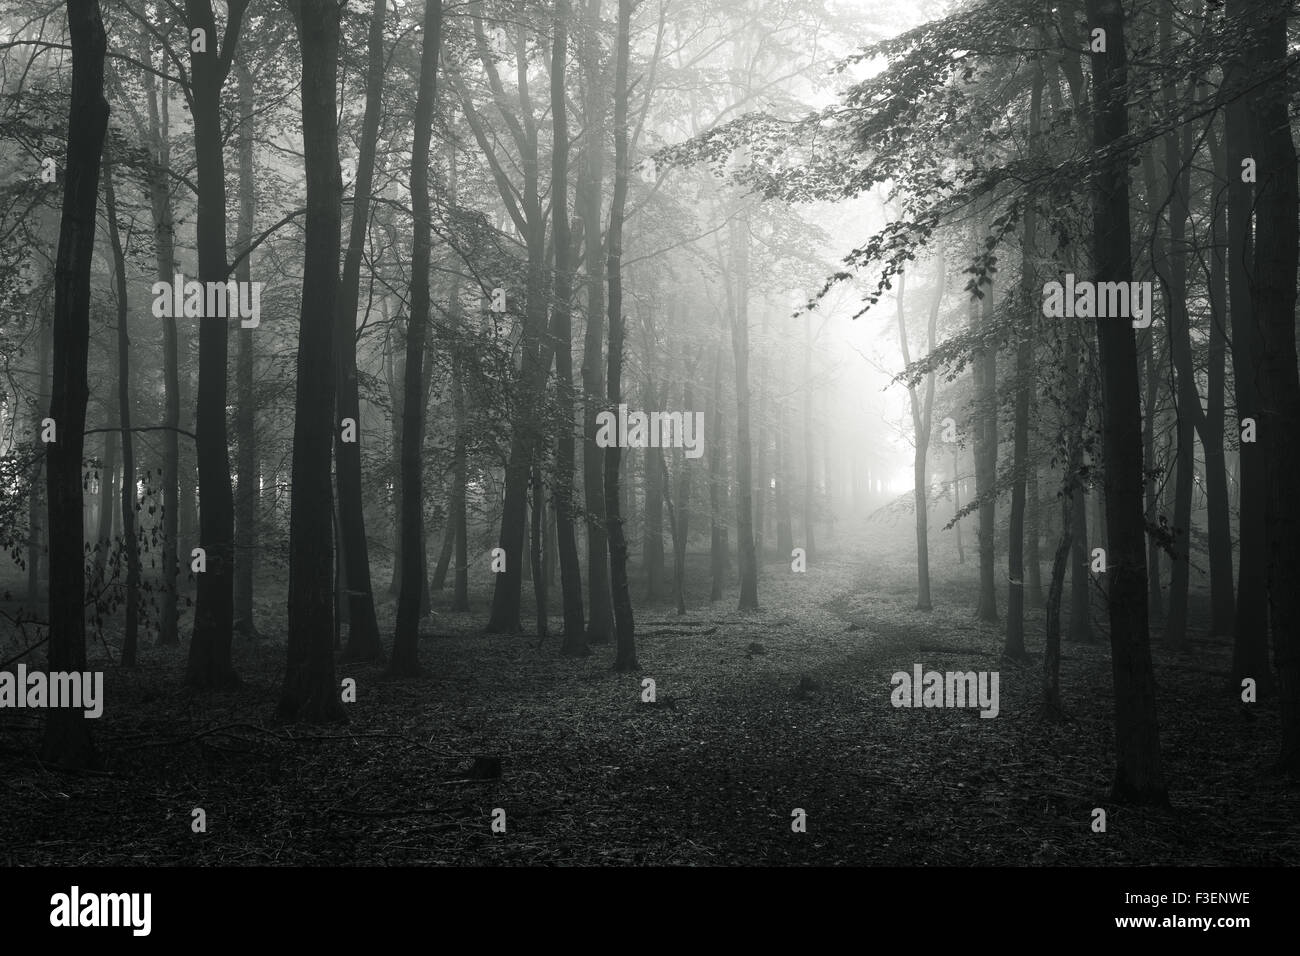 Beech trees in early autumn in Dockey Wood, Hertfordshire, England UK. - Stock Image